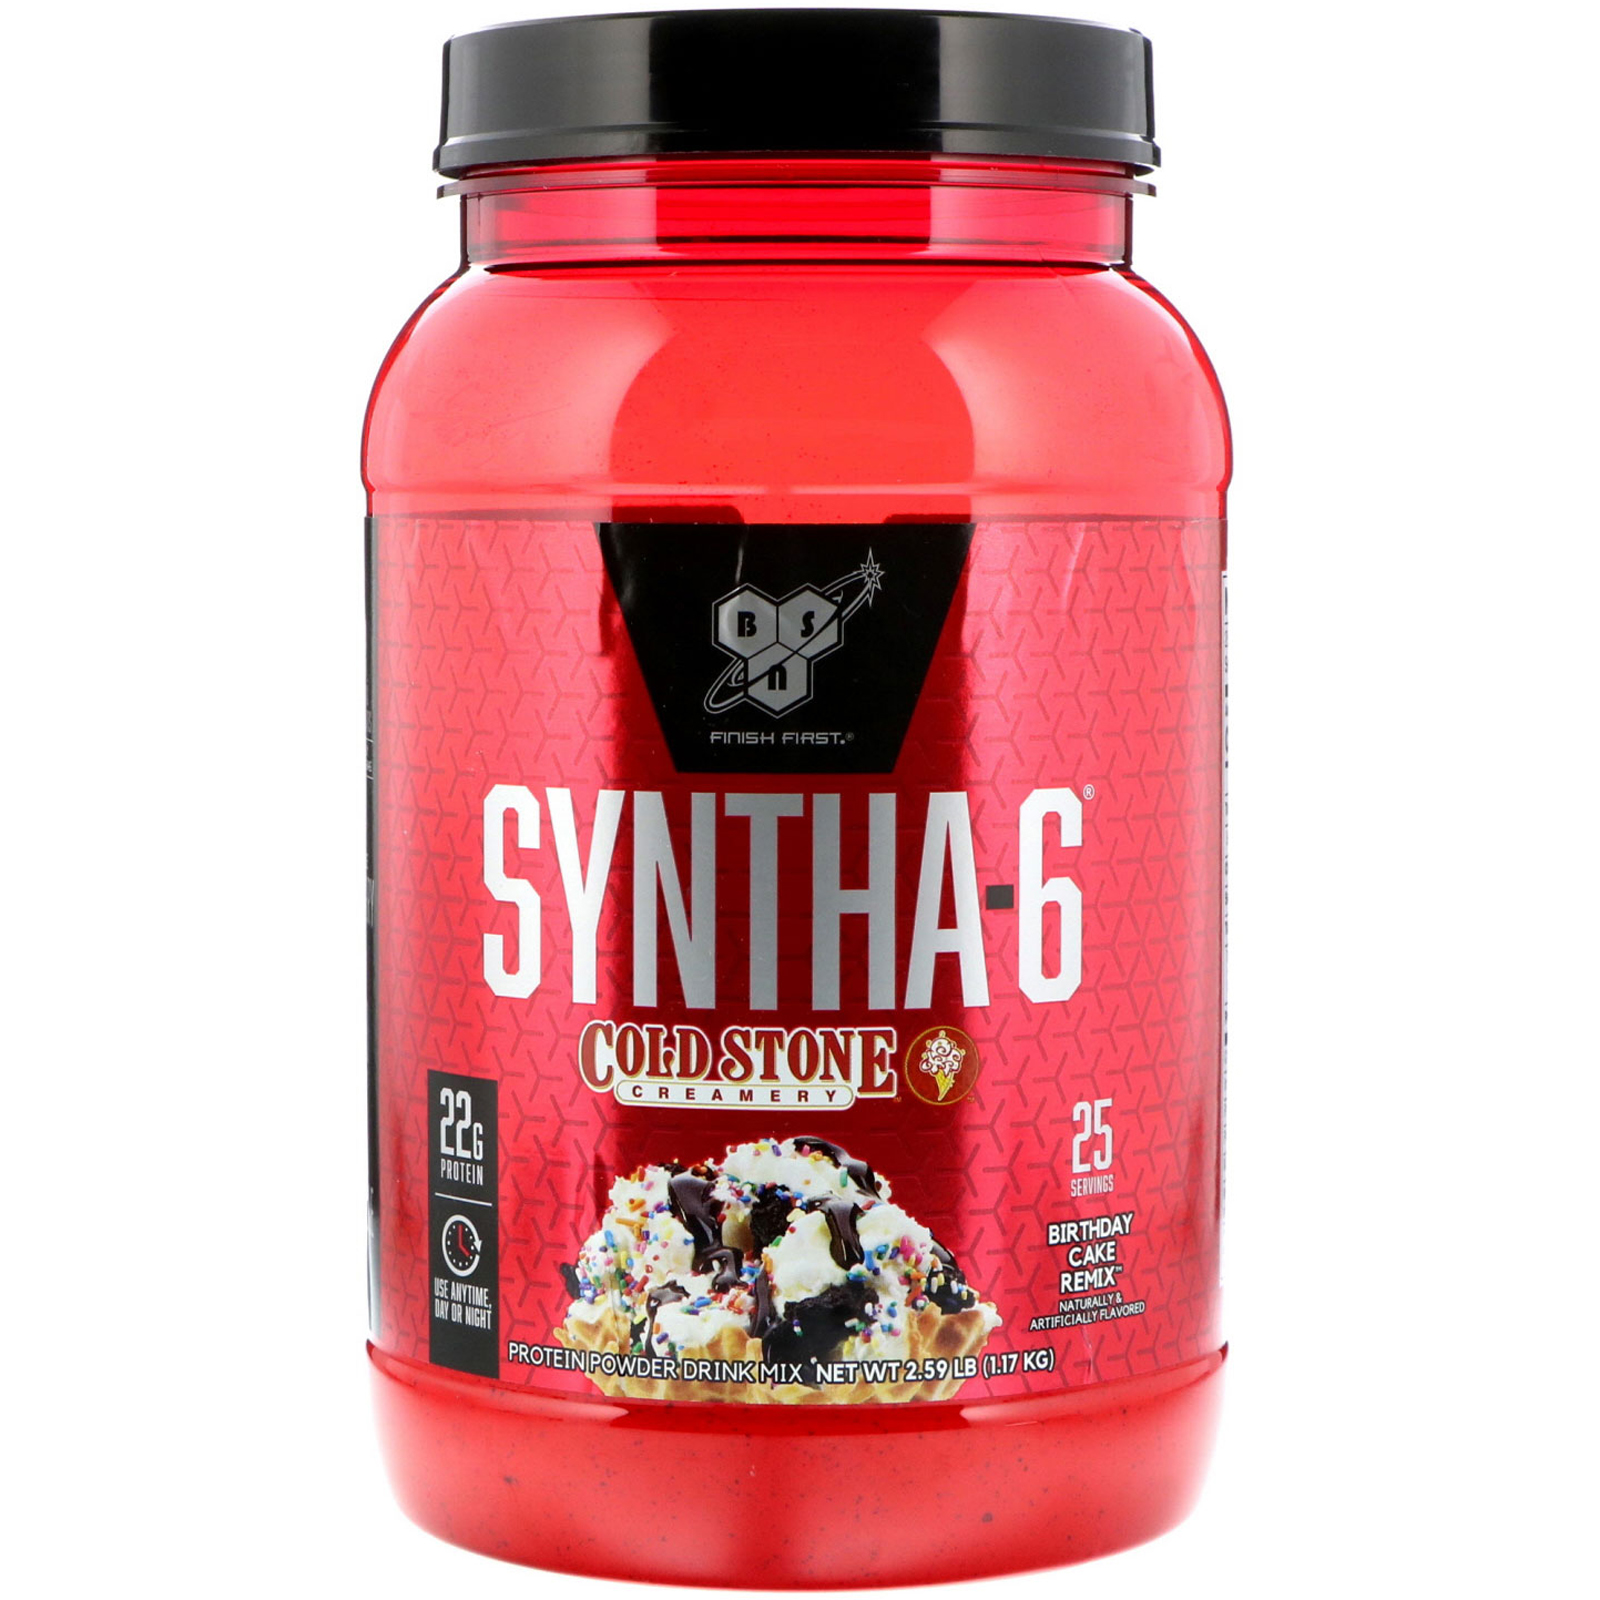 Bsn Syntha 6 Cold Stone Creamery Birthday Cake Remix 259 Lb